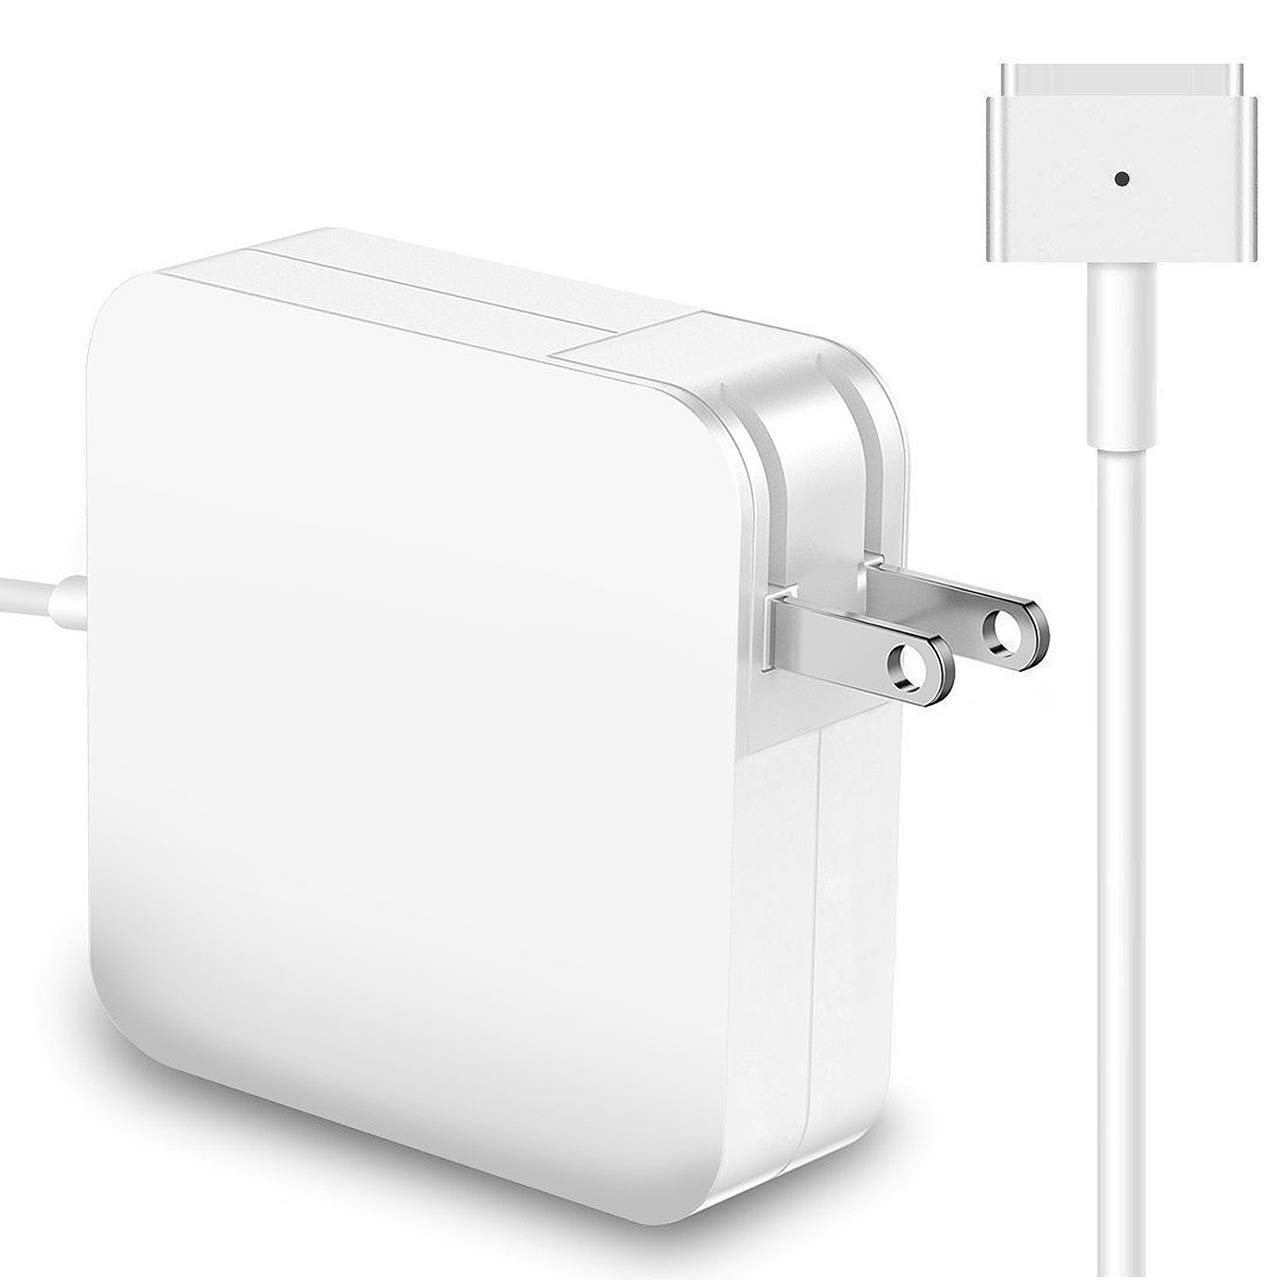 Mac Book Air Charger 45W Charger T-Tip Adapter Replacement Magsafe 2 Connector Power Adapter for Mac Book Air 11-inch and 13-inch After Mid 2012